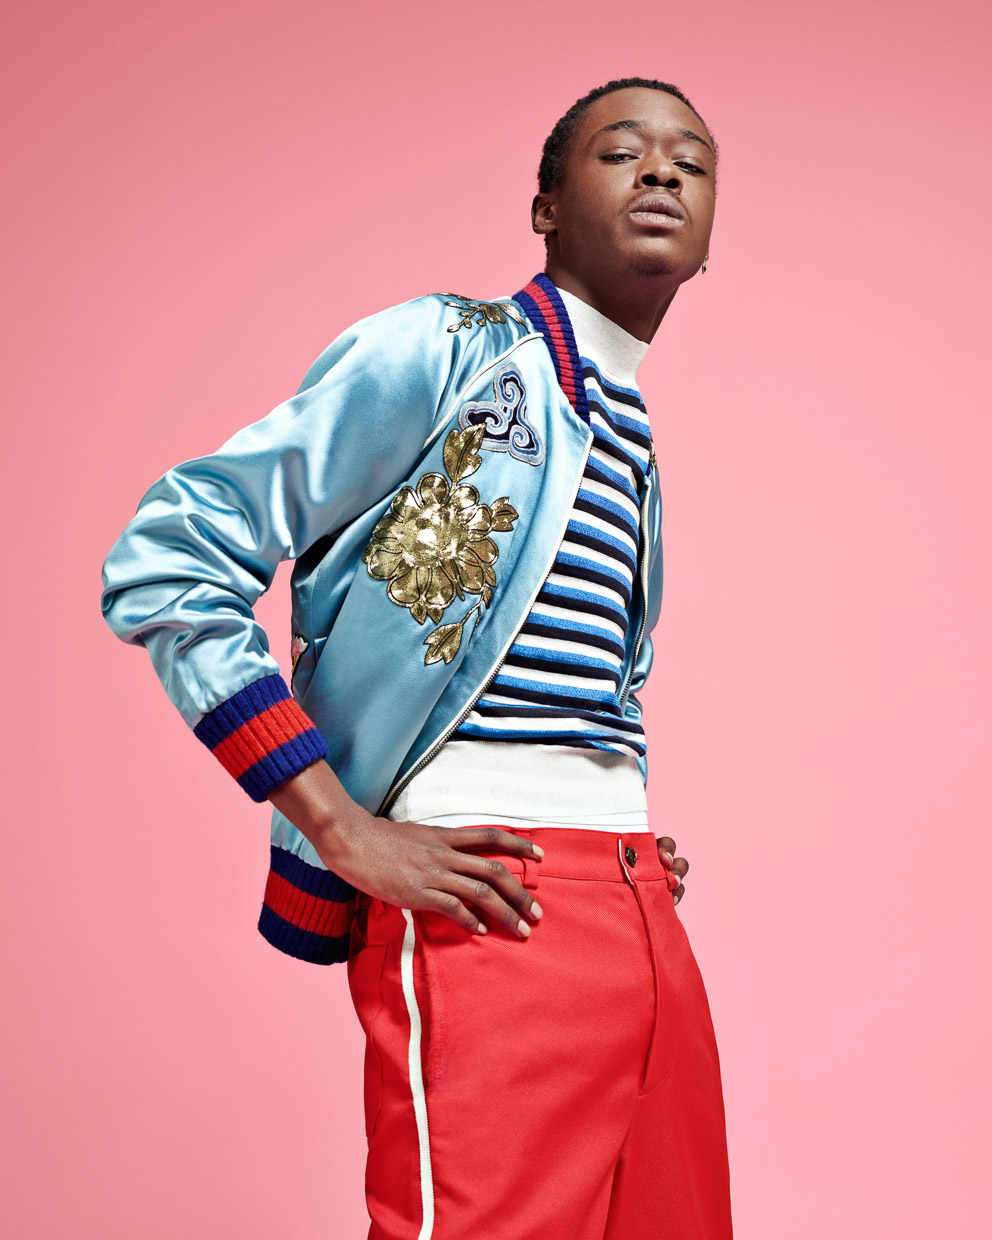 Ashton Sanders. The Guardian.